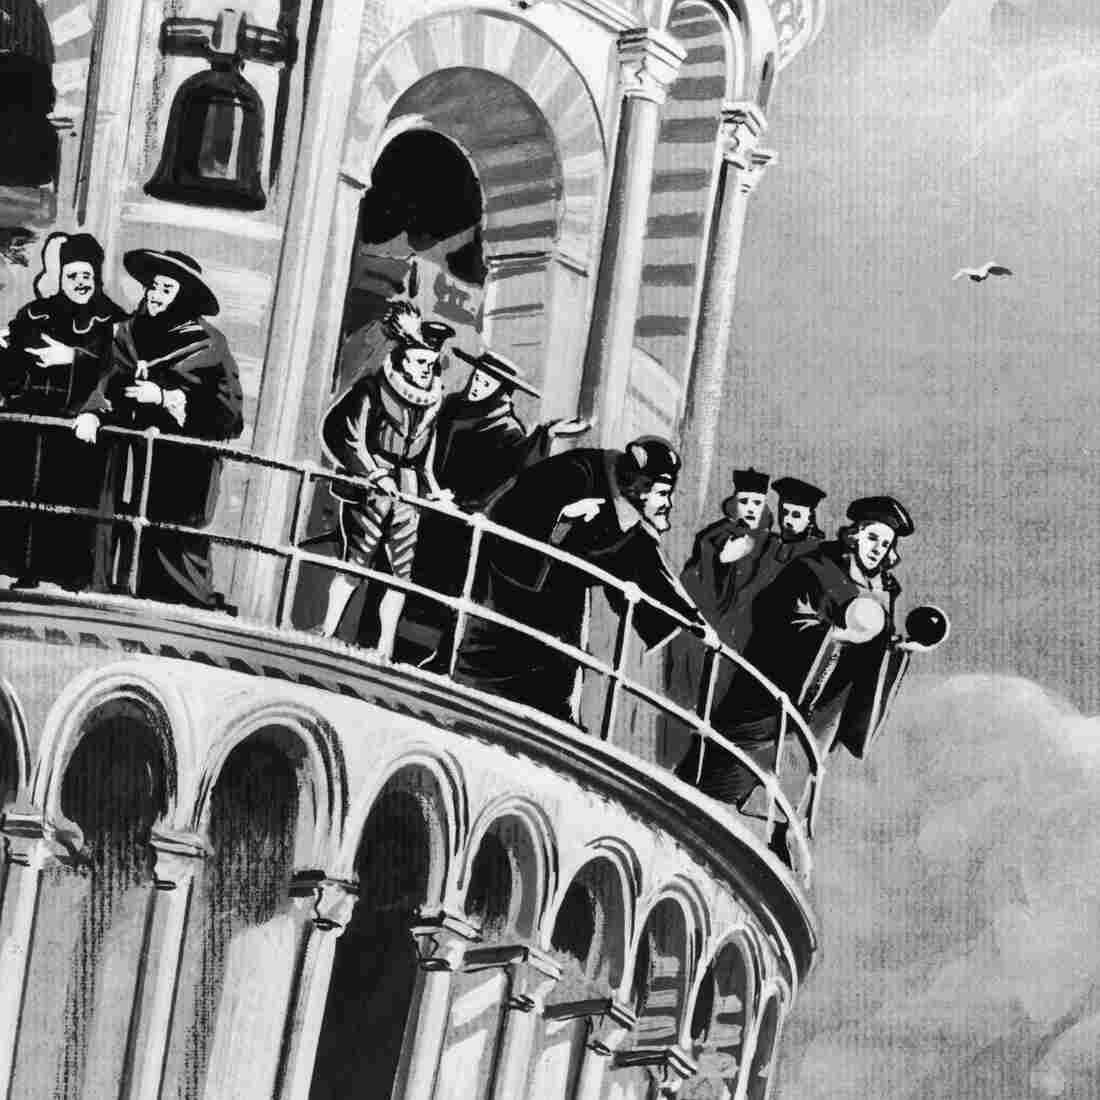 Most historians agree that Galileo's famous experiment atop the Leaning Tower of Pisa never took place. So how did he arrive at and support his alternative to Aristotelian dogma?